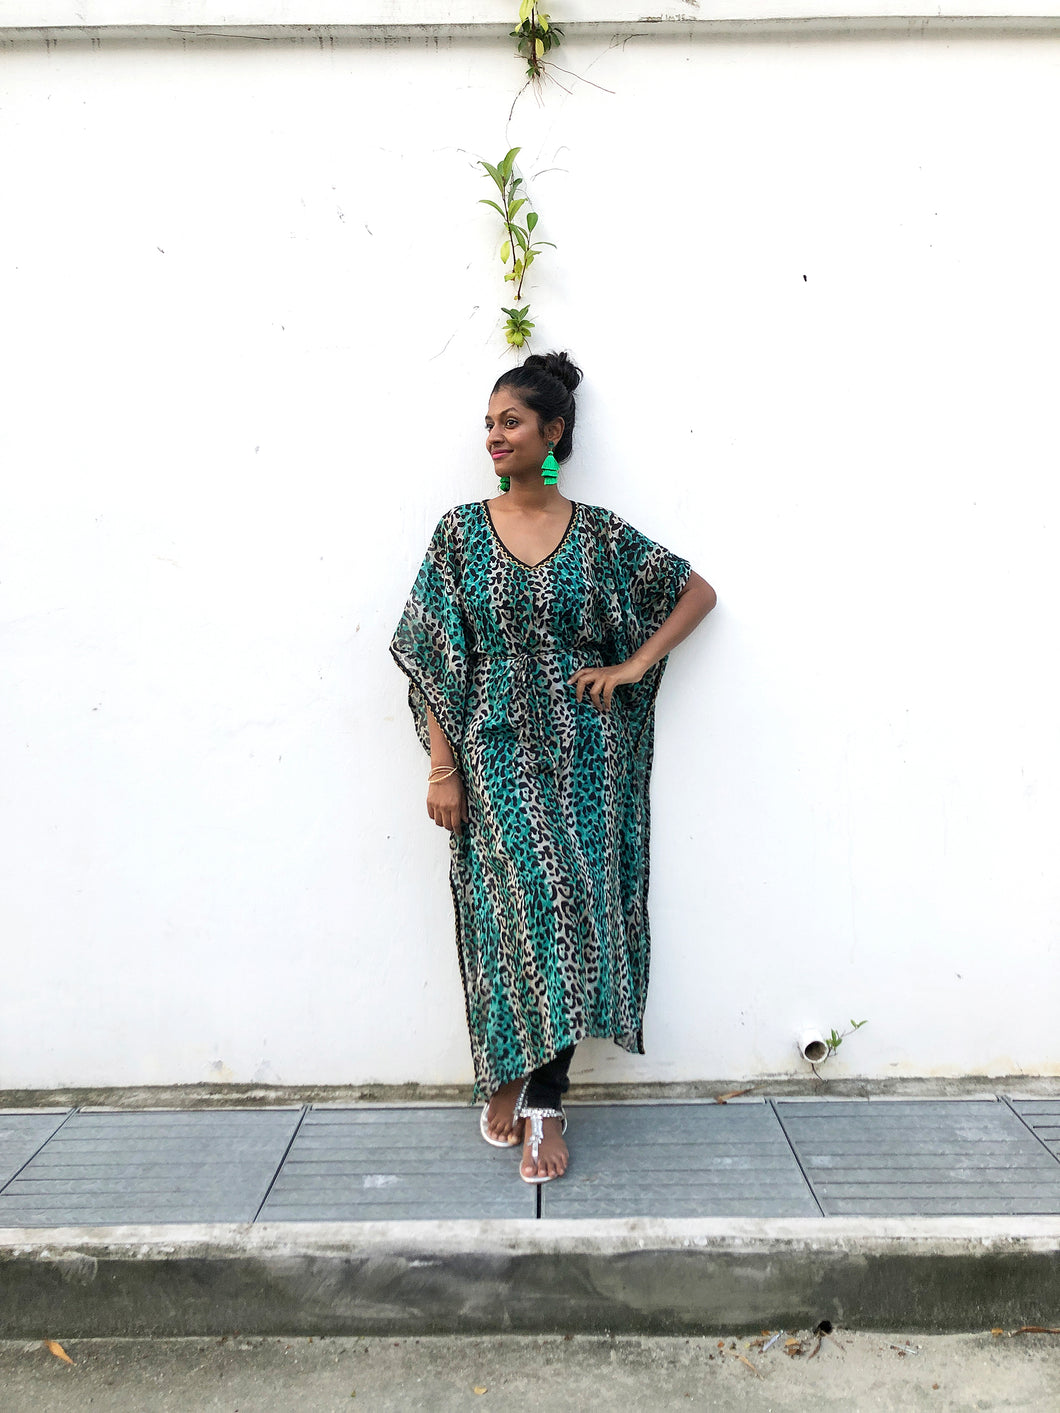 Green leopard chiffon long belted drawstring beach kaftan cover up dress with gold trimmed neckline and sleeves